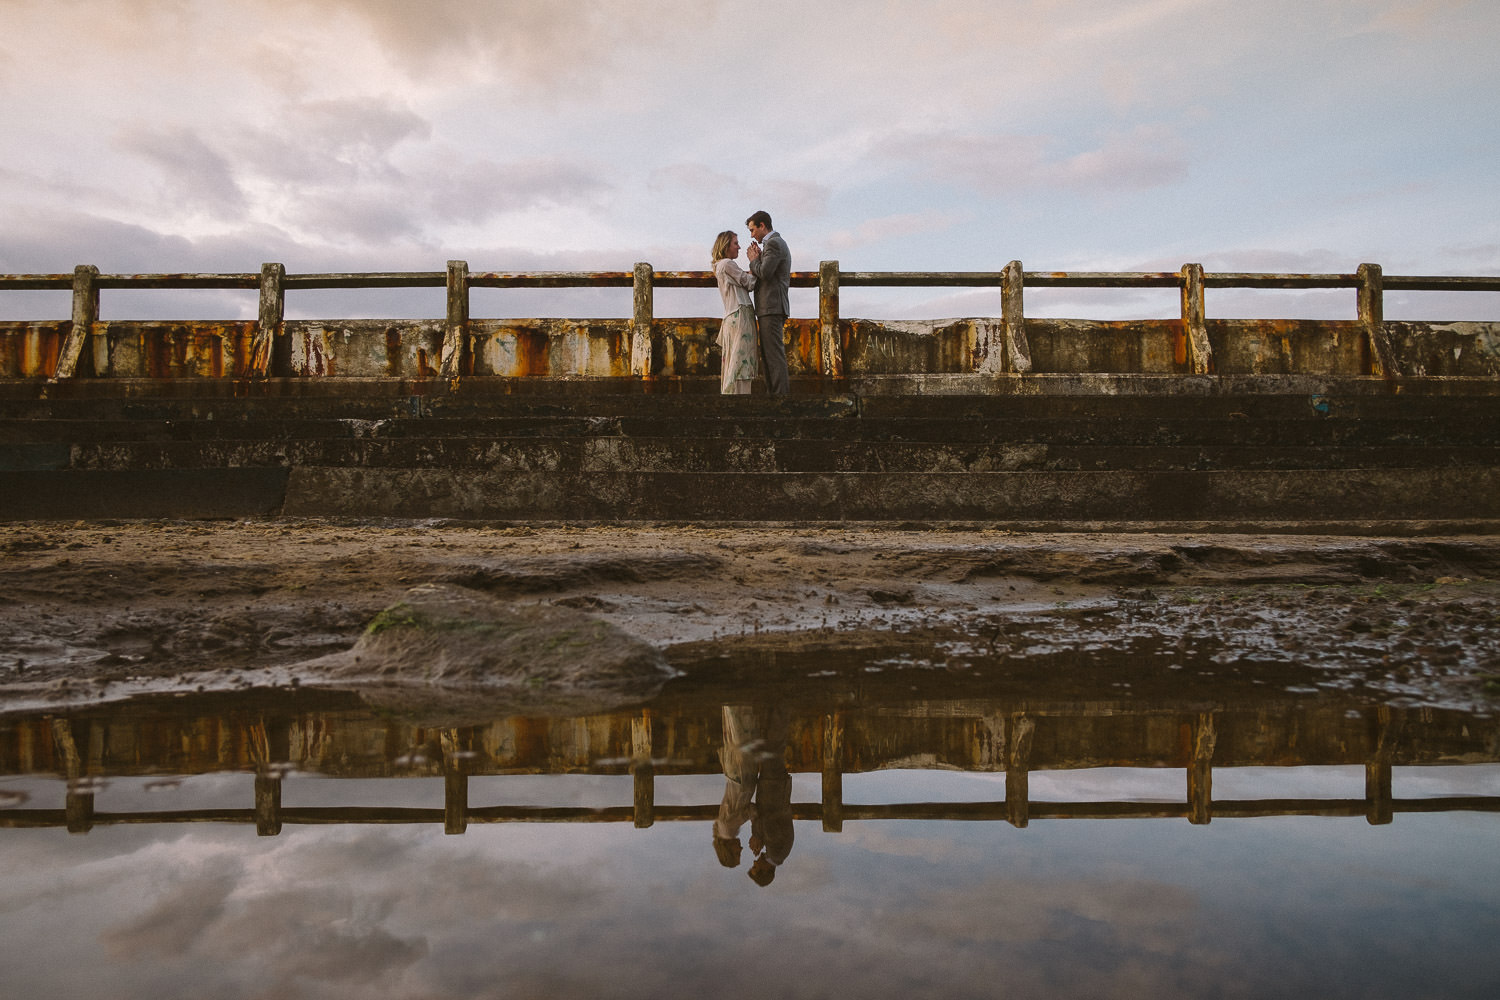 Engaged couple hold hands while standing in ruined and rusty outdoor swimming pool